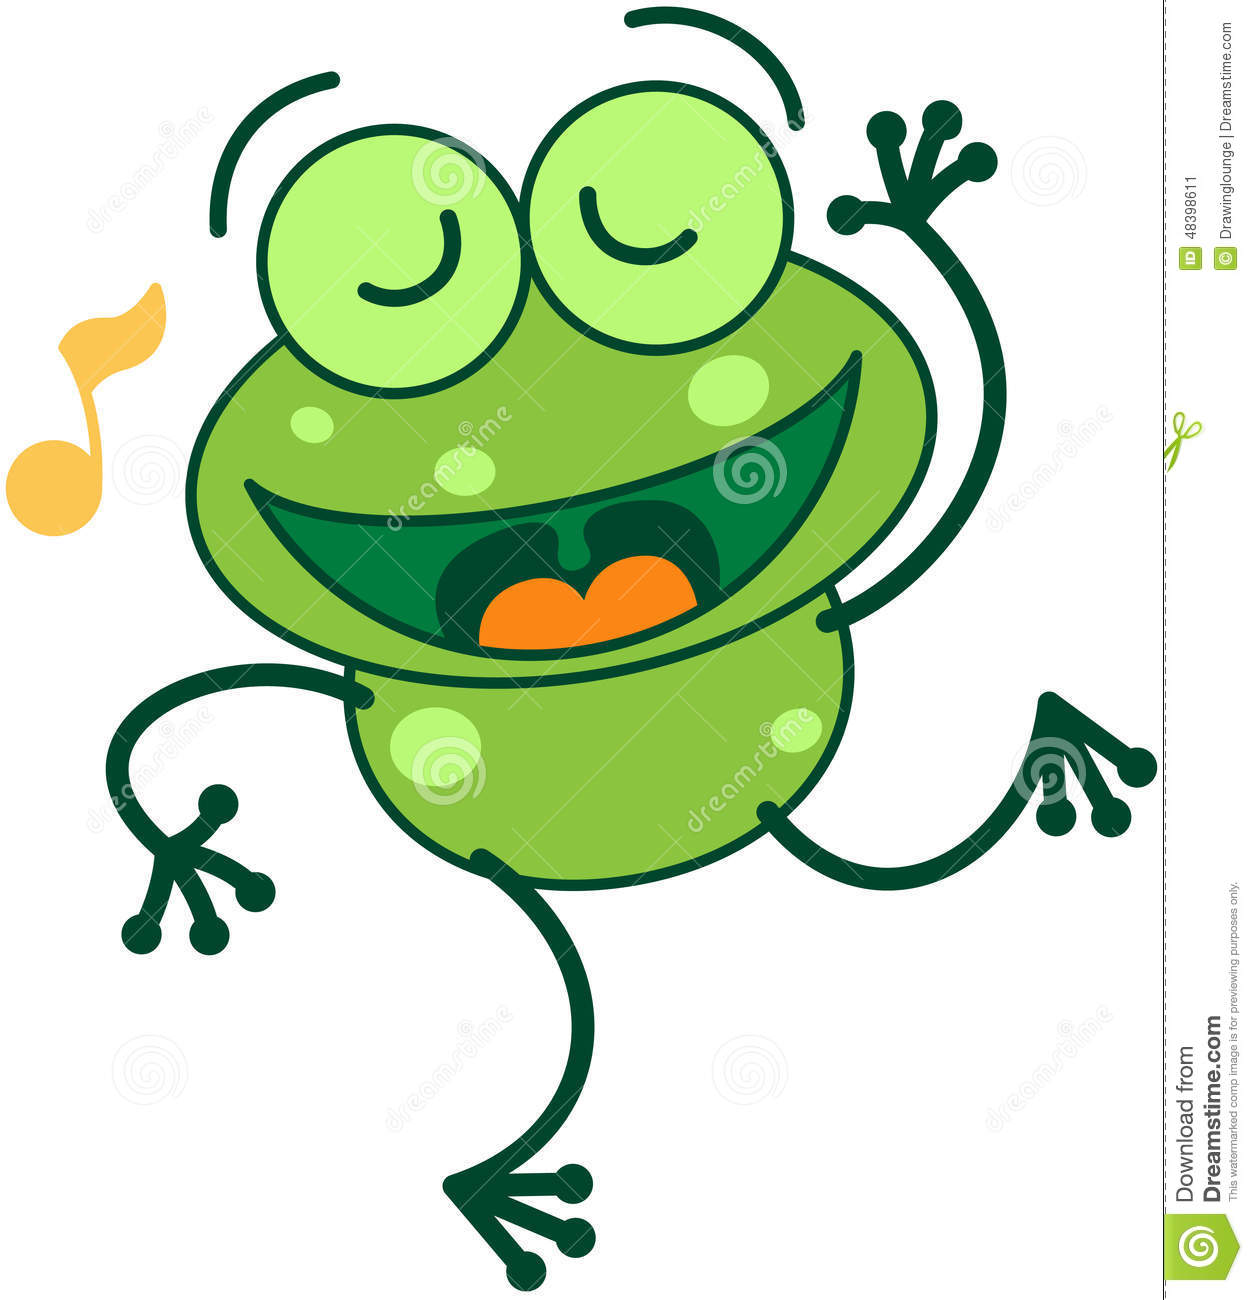 Stock Illustration Green Frog Singing Dancing Cute Long Legs Closing Its Bulging Eyes Showing Musical Note Animatedly Image48398611 together with Caucasian Model Man Underwear Colored Template 460860301 likewise Jonass Father together with Front And Back Lunges additionally Stock Illustration New Cartoon Reaching Legs. on cartoon legs